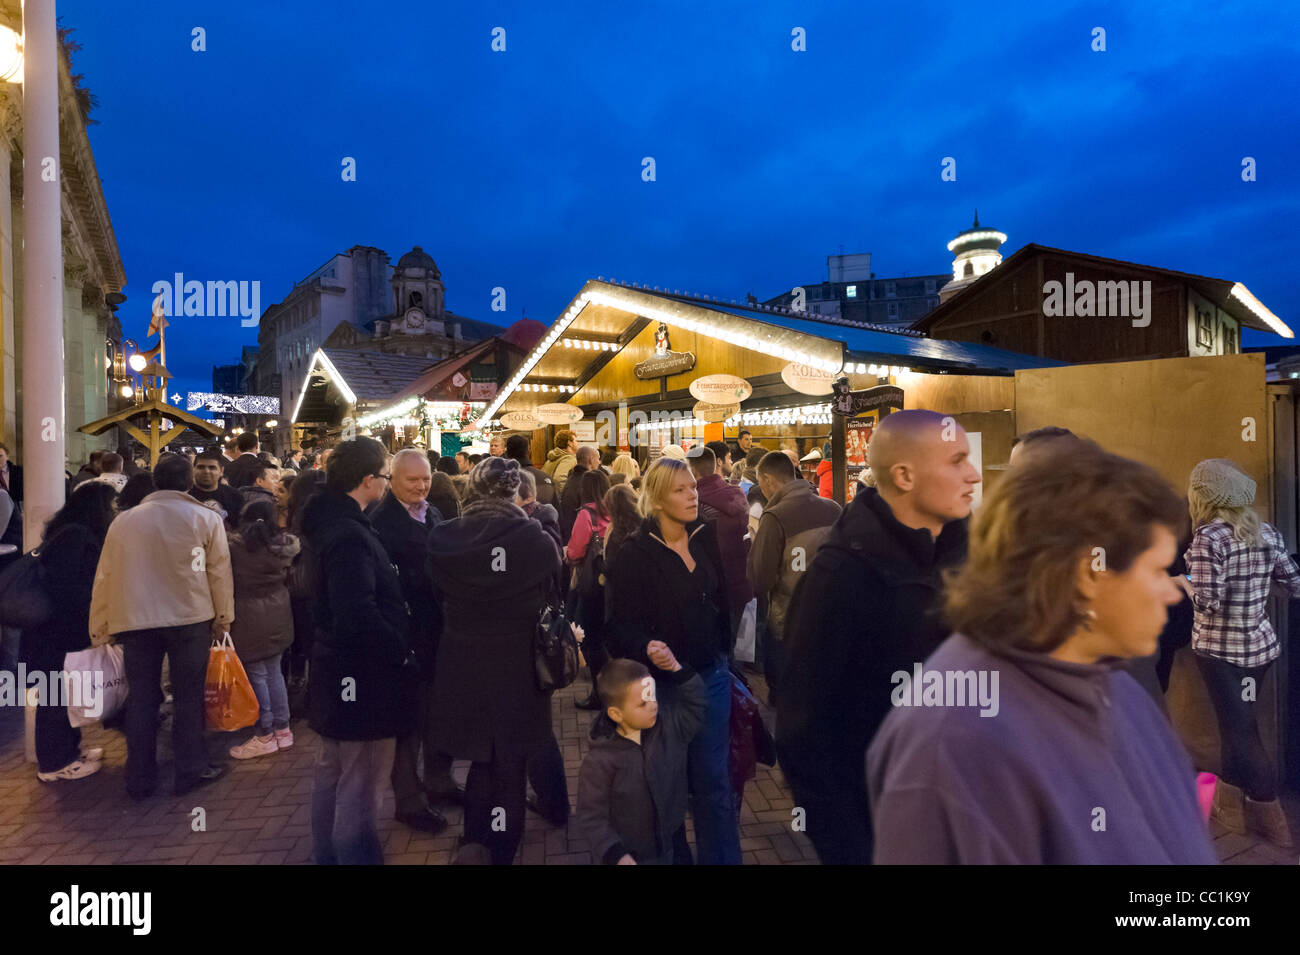 Crowds of shoppers in front of the Council House at the Frankfurt German Christmas Market, Victoria Square, Birmingham, - Stock Image